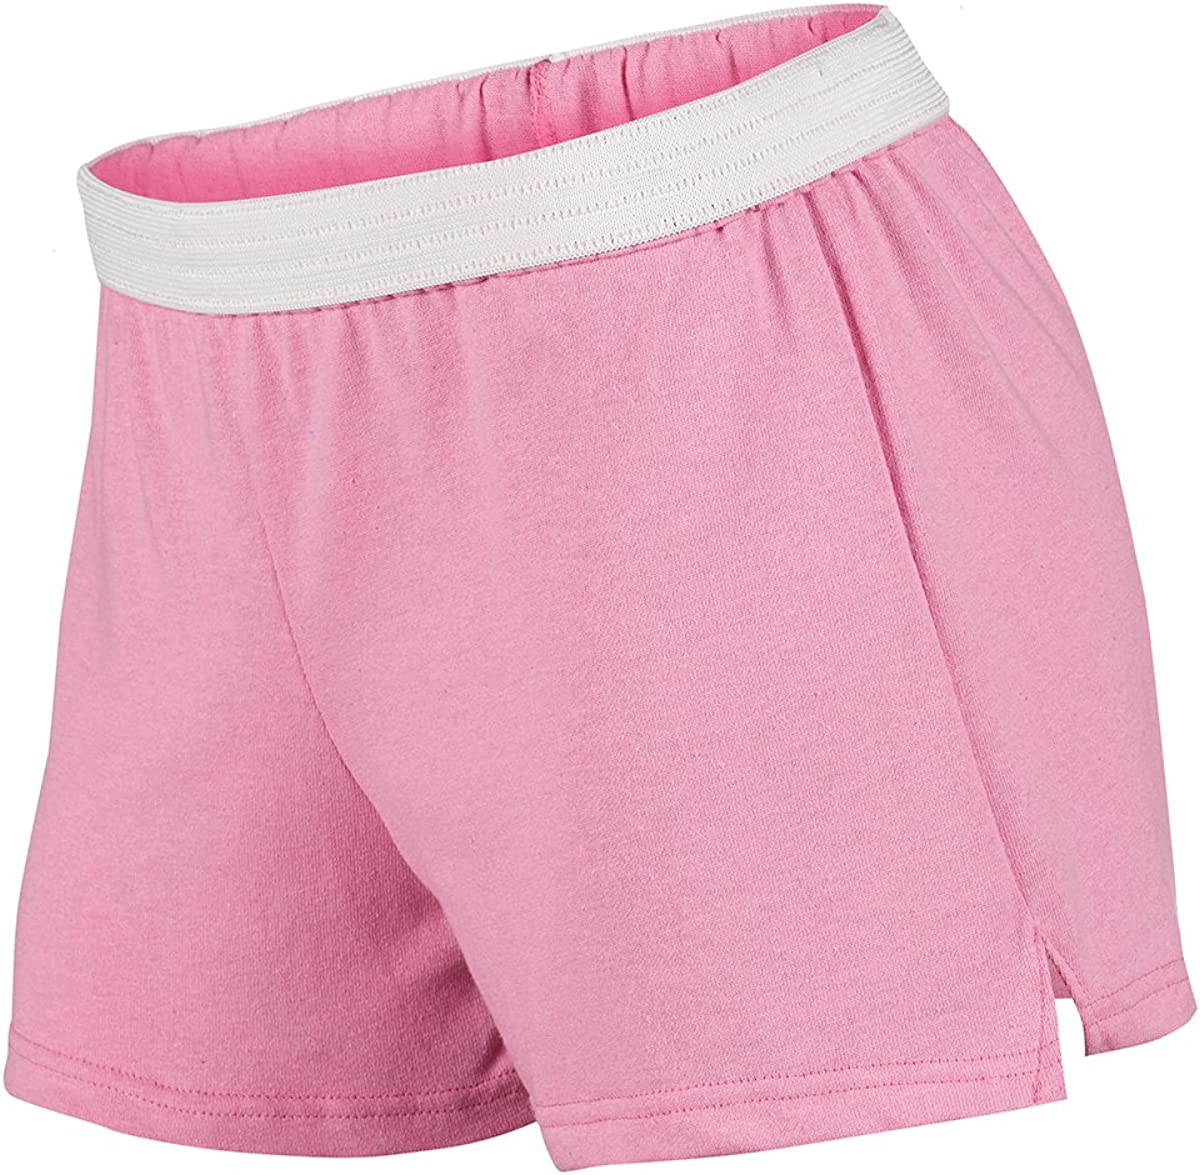 Soffe Girls Authentic Cheer Short 1-Pack X-Small Washed Pink